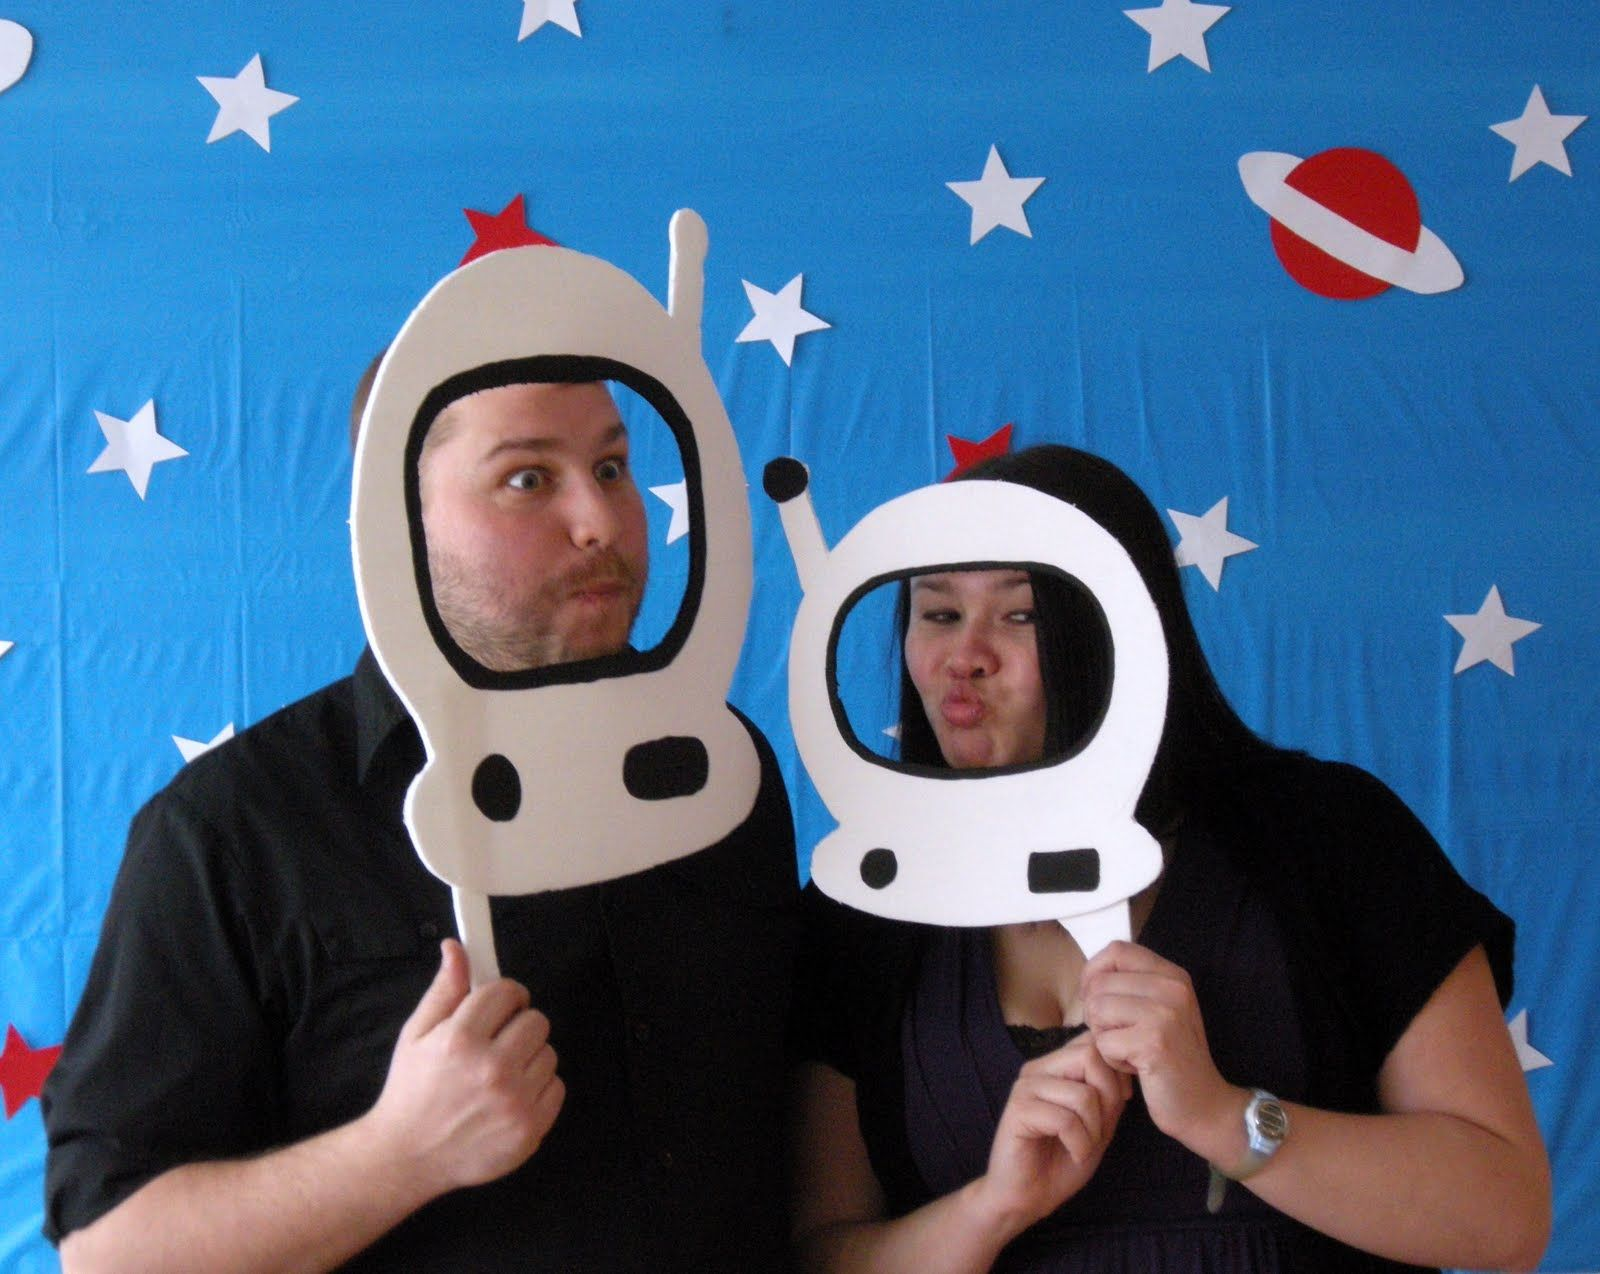 make your own astronaut helmet costume - photo #22